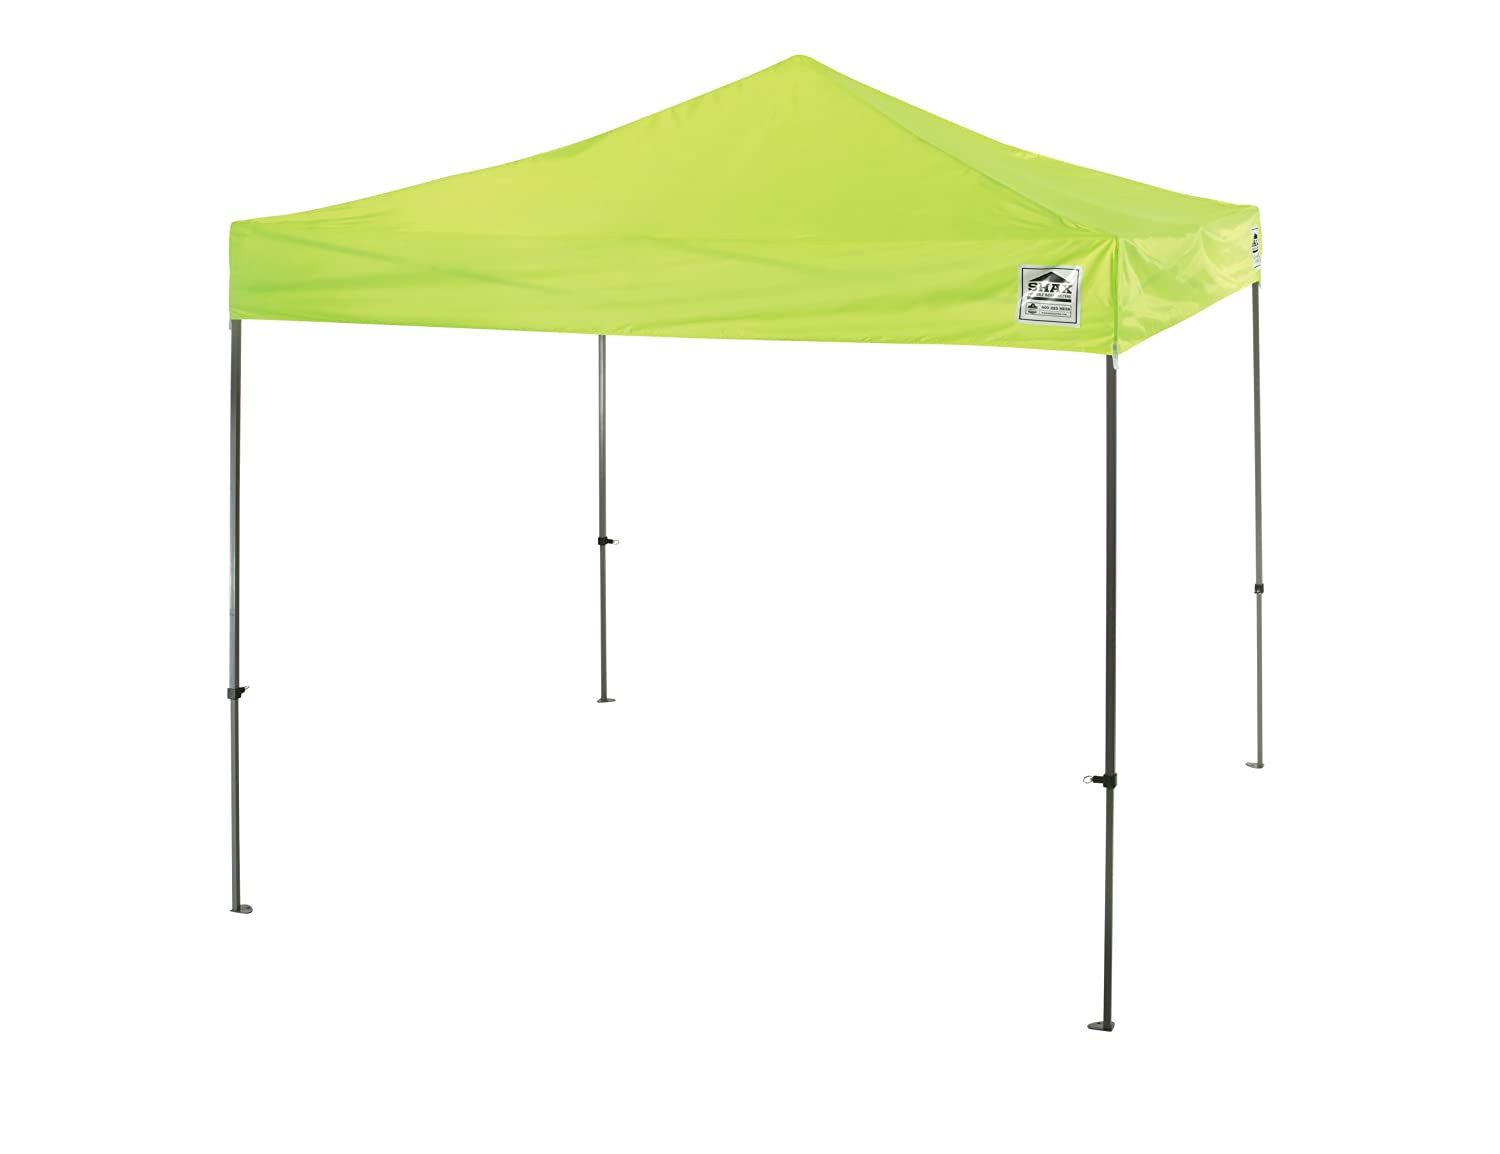 Amazon.com Ergodyne SHAX 6010 Pop-Up Canopy Tent Lightweight 10u0027 x 10u0027 Lime Home Improvement  sc 1 st  Amazon.com & Amazon.com: Ergodyne SHAX 6010 Pop-Up Canopy Tent Lightweight 10 ...